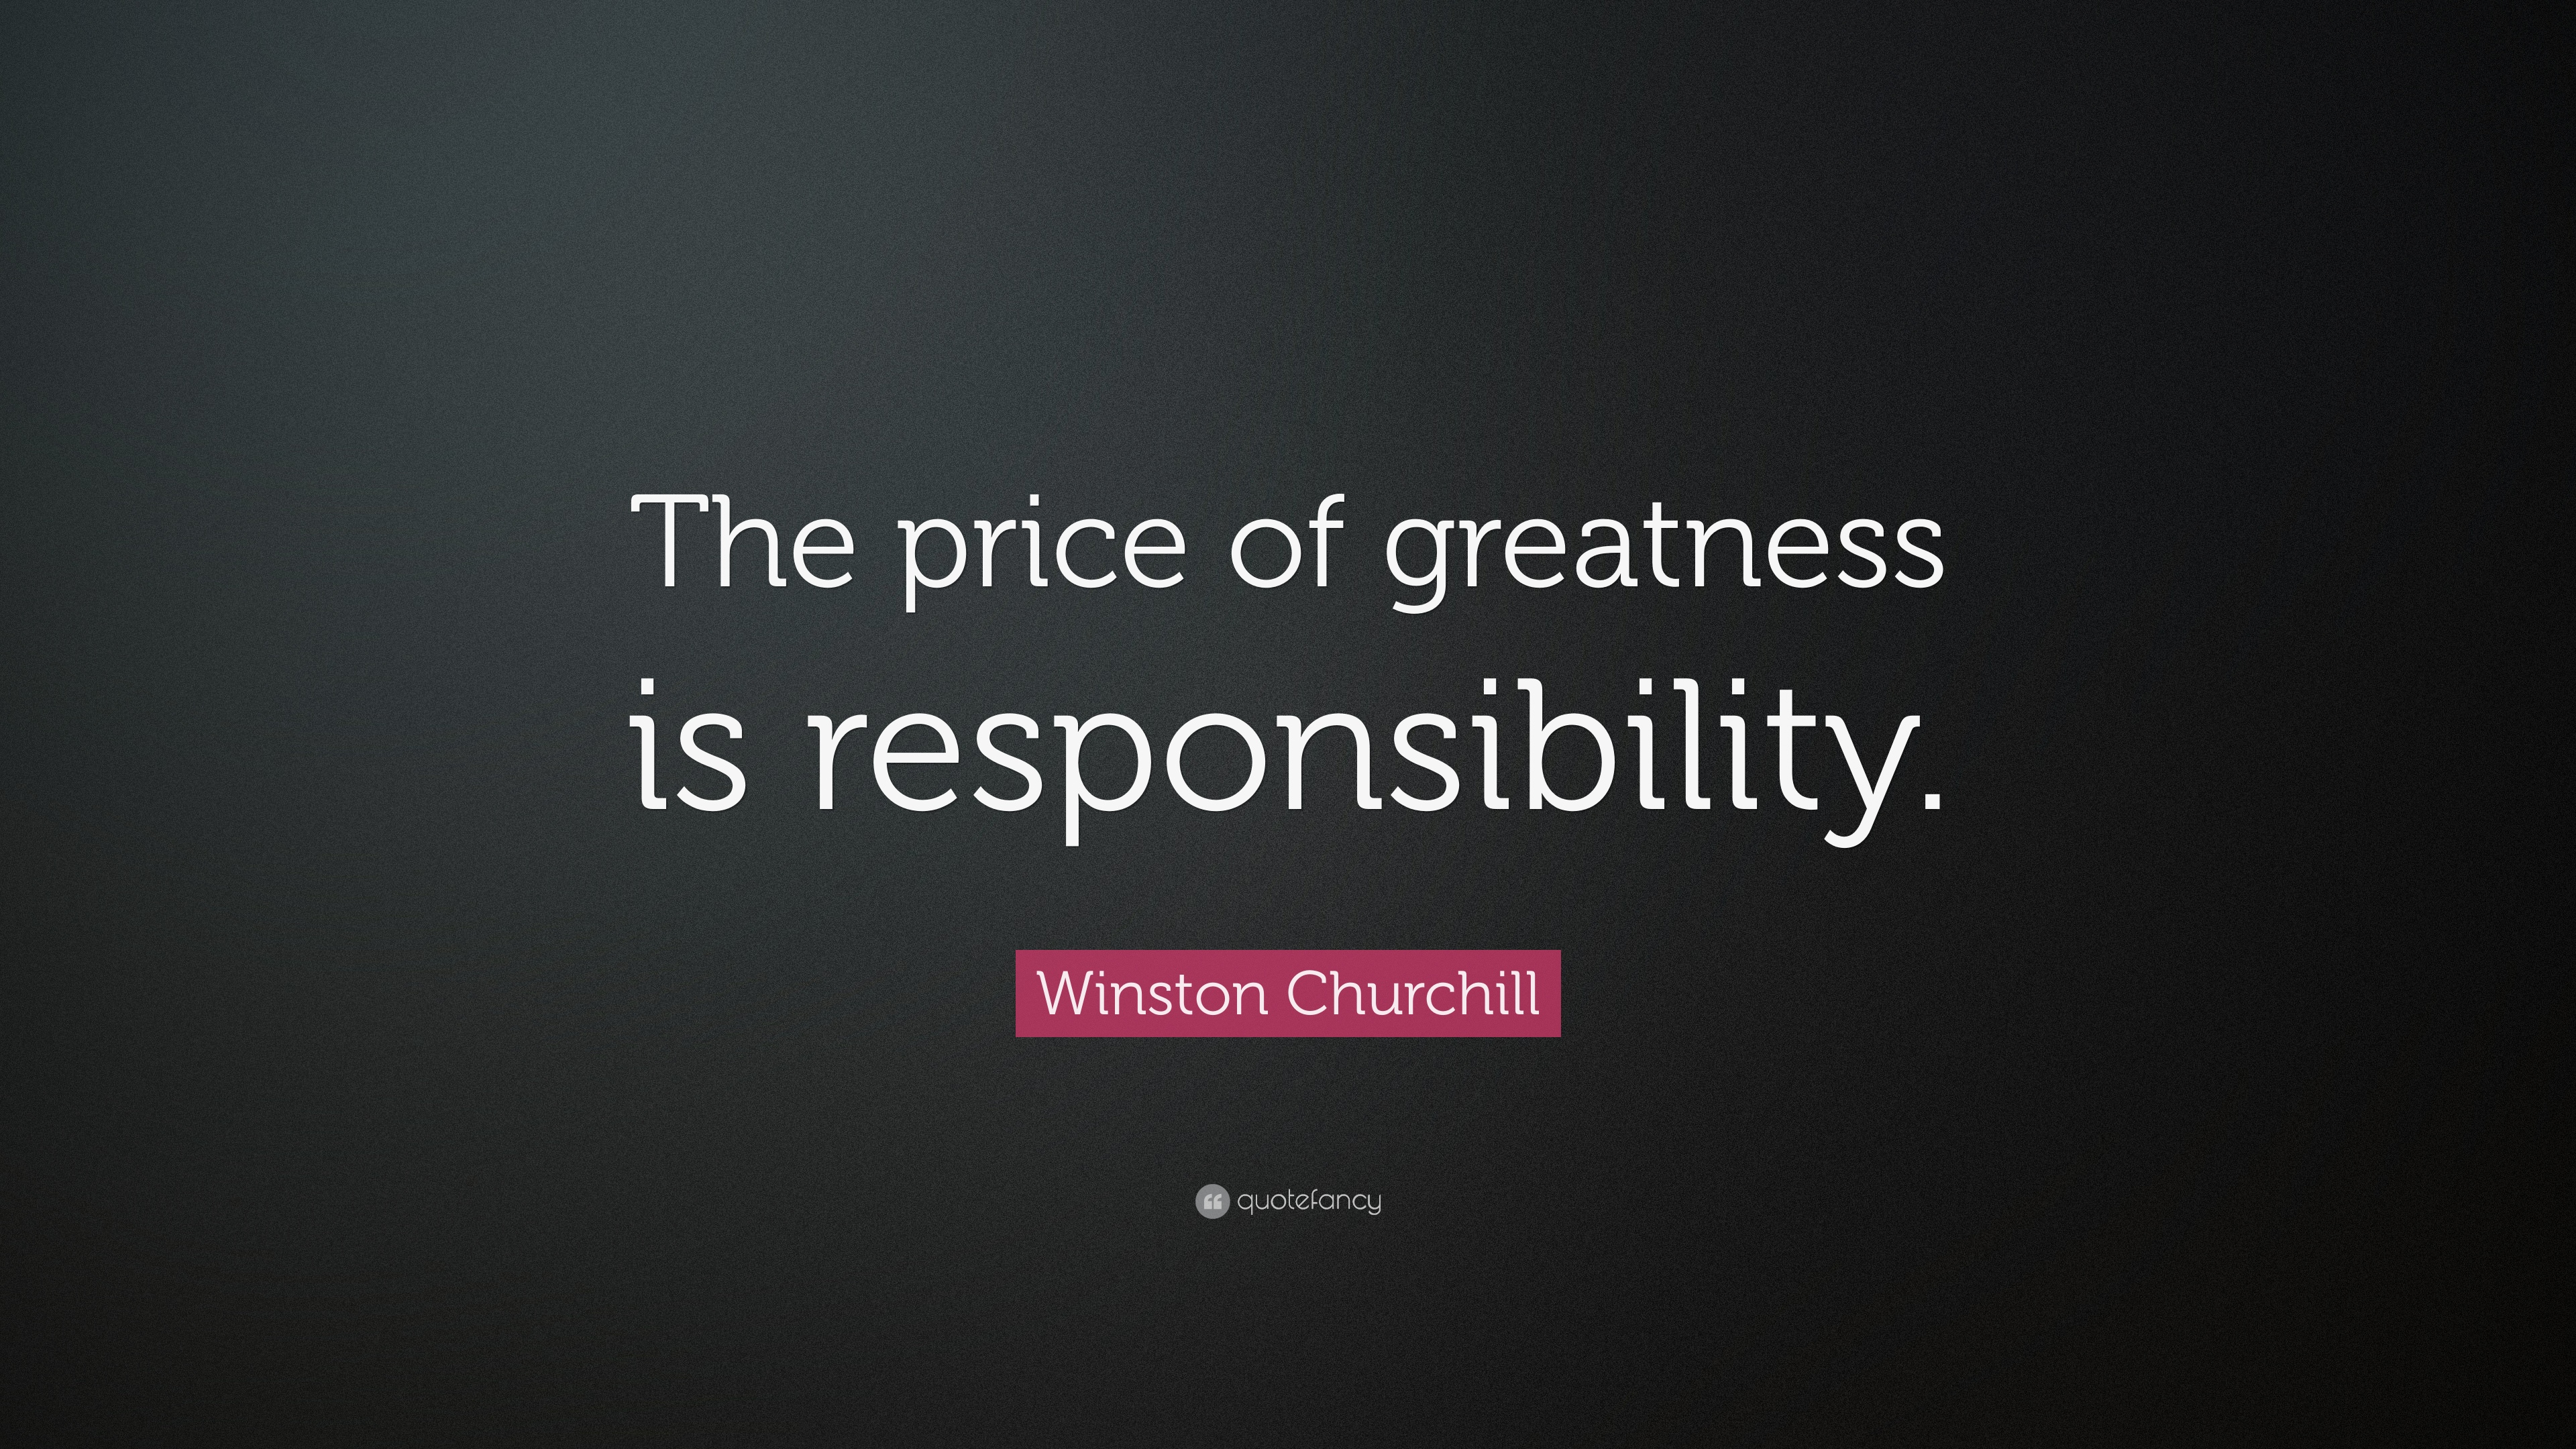 winston churchill quote the price of greatness is responsibility 23 wallpapers quotefancy. Black Bedroom Furniture Sets. Home Design Ideas